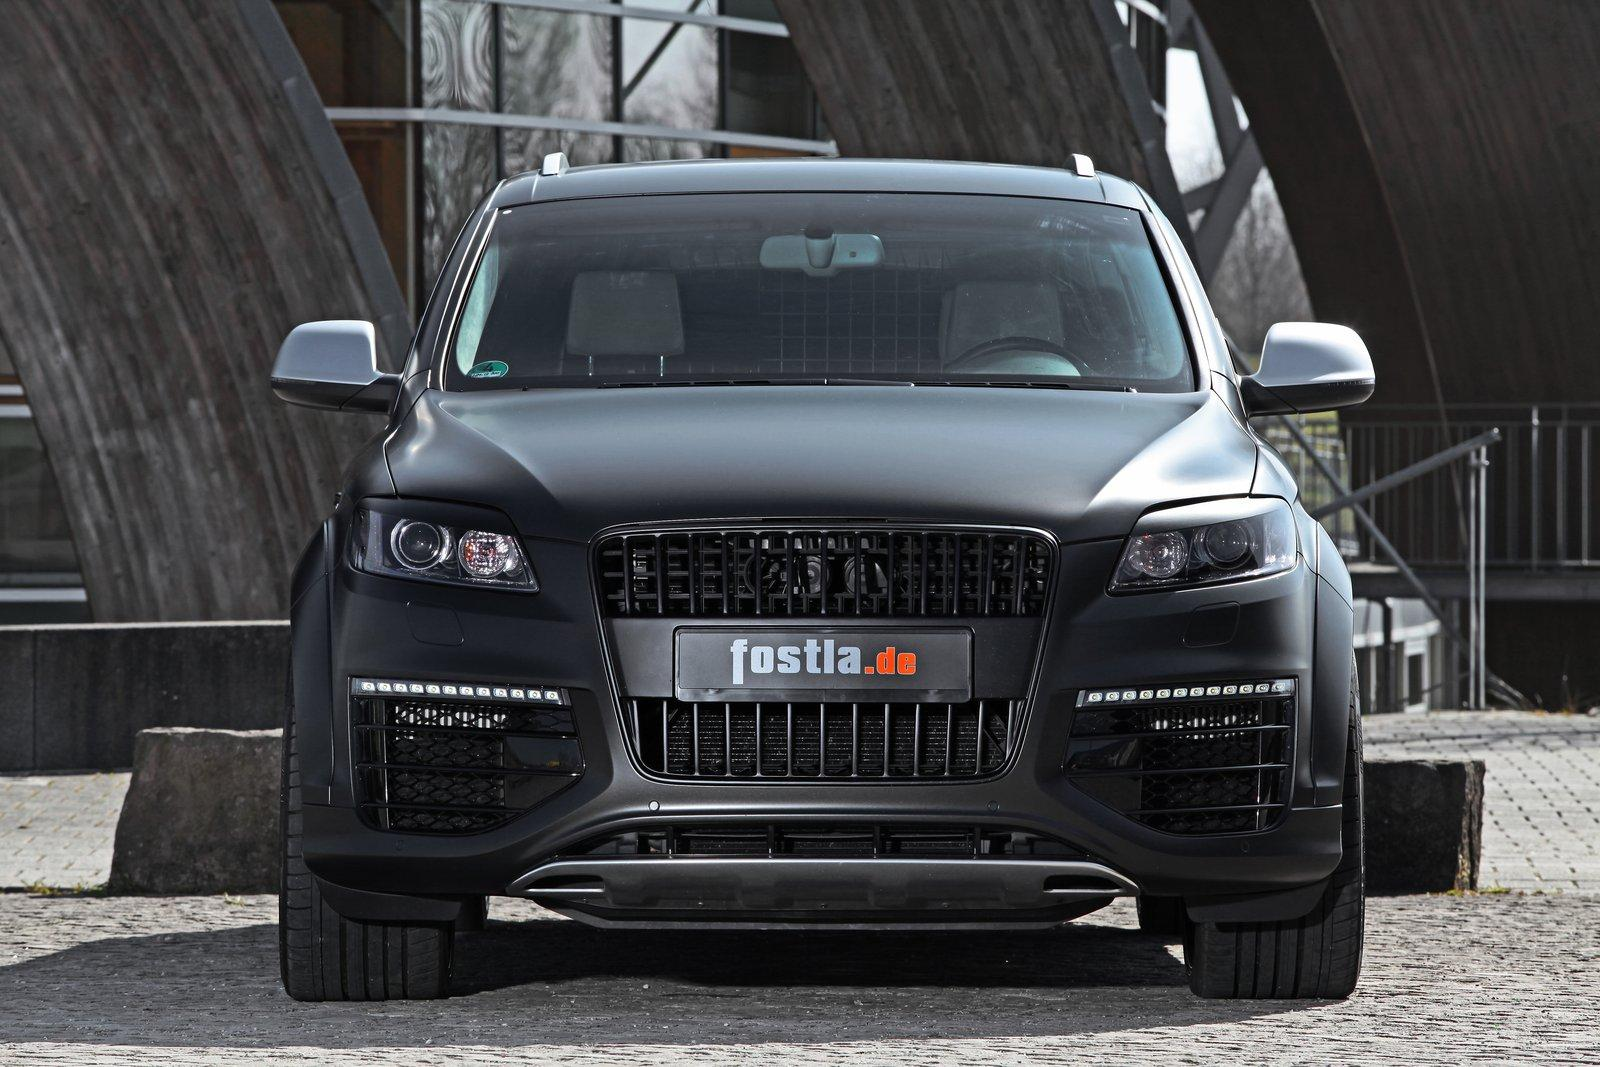 Fostla Audi Q7 V12 Tdi Boosted To 600ps 442kw